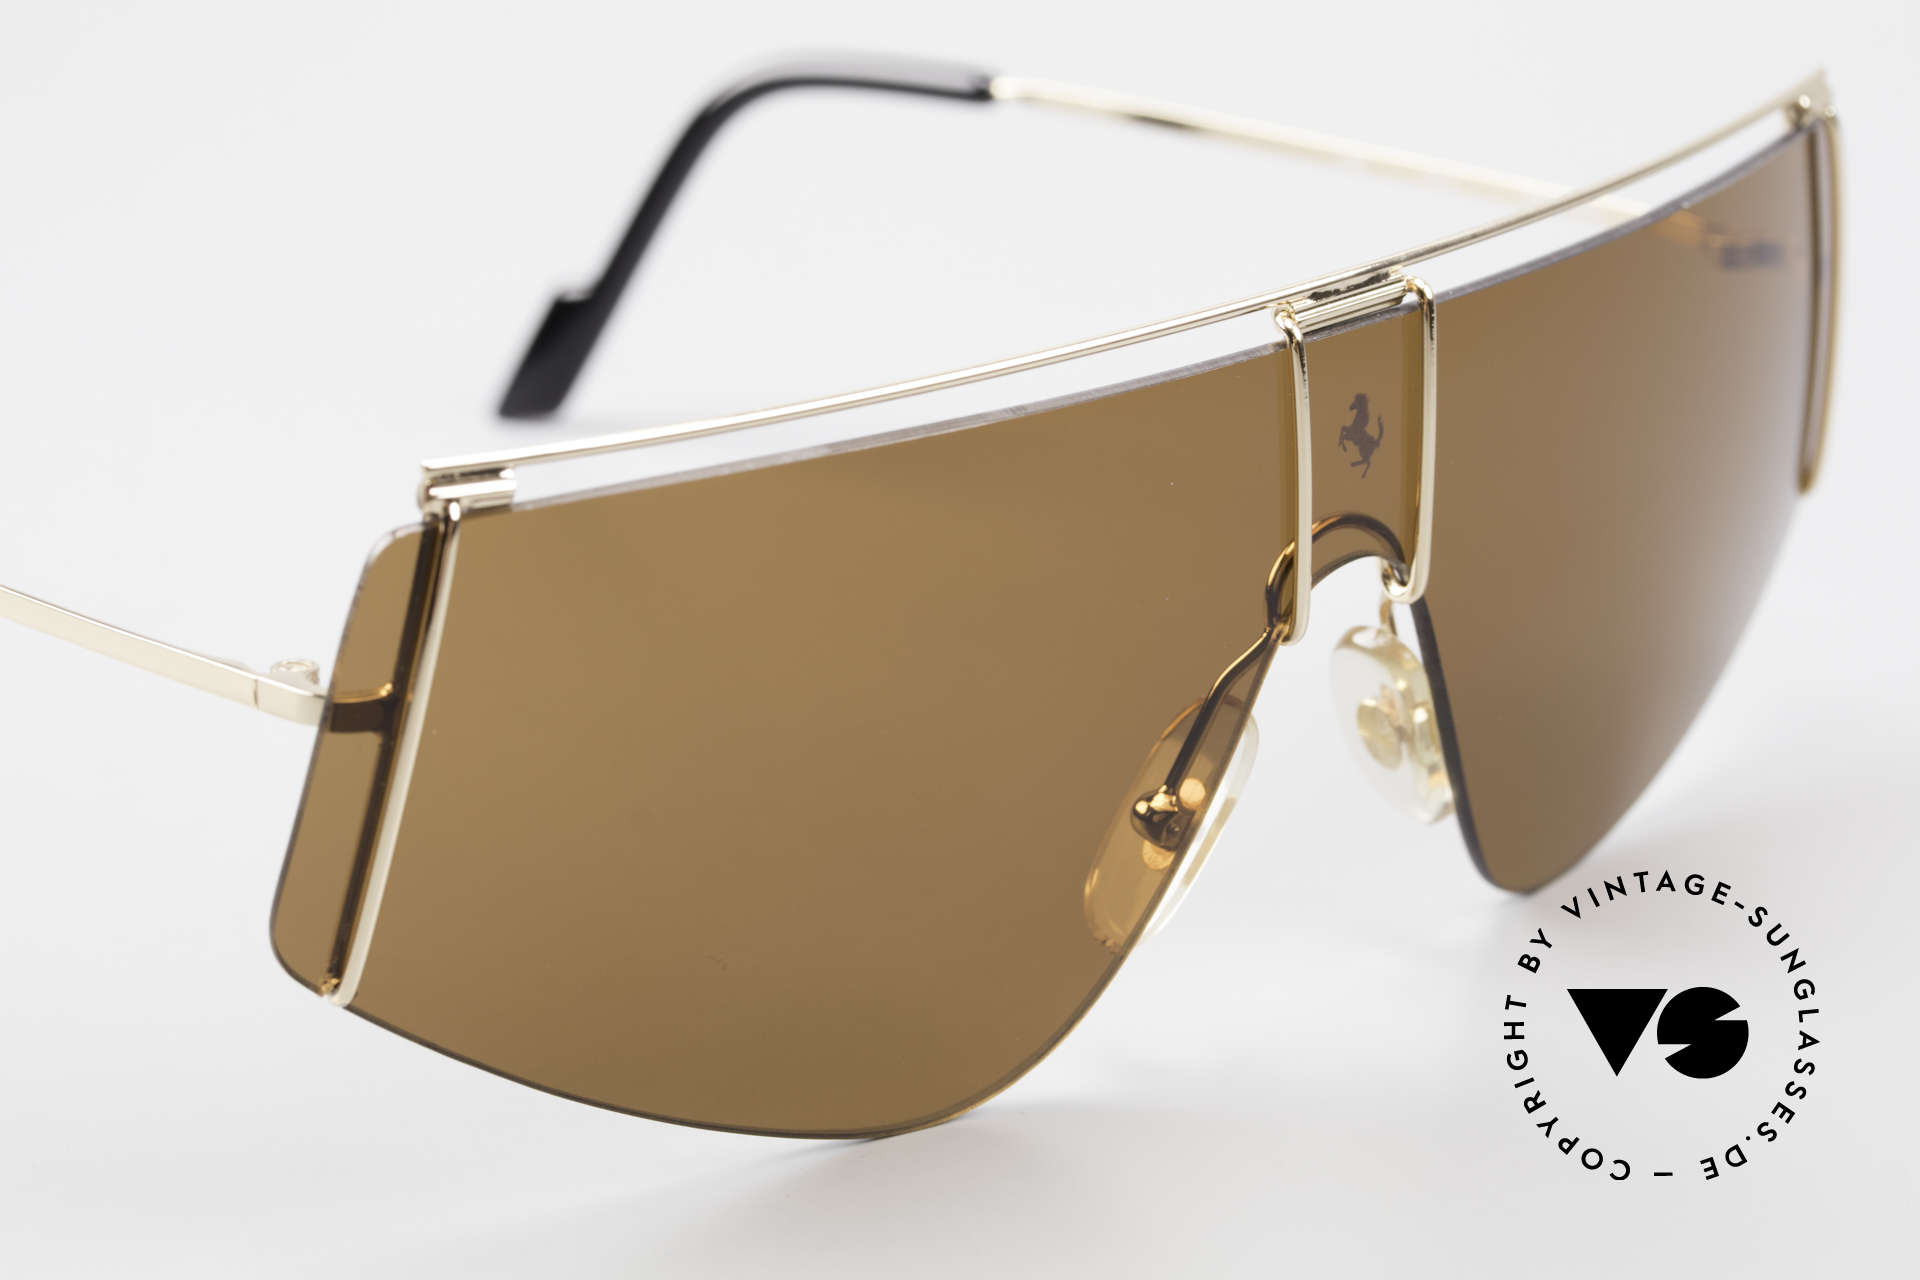 Ferrari F15/S Luxury Sports Sunglasses 90's, never worn (like all our vintage FERRARI shades), Made for Men and Women